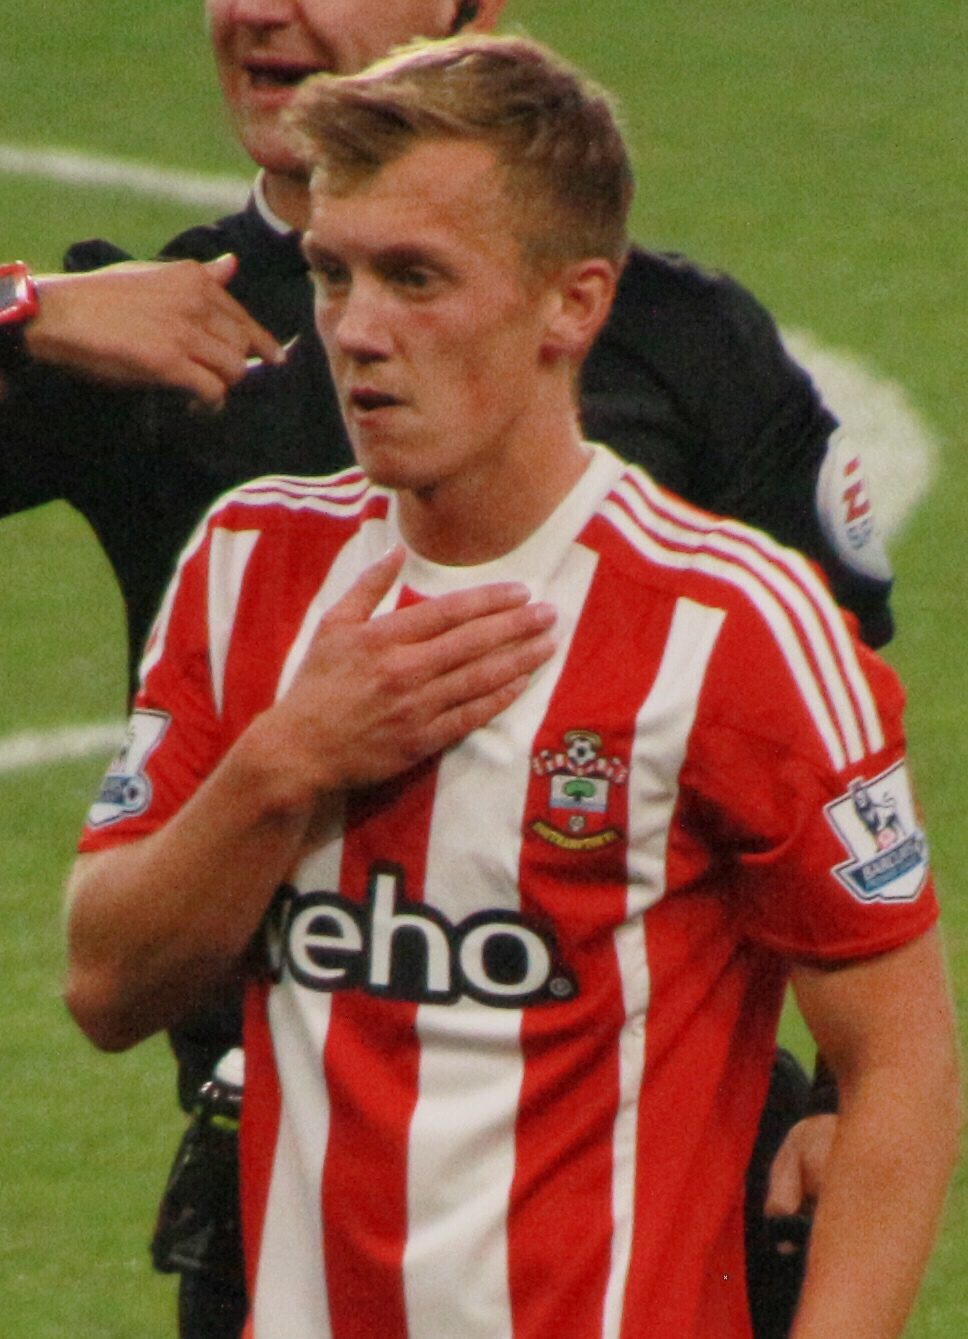 James Ward-Prowse, Southampton midfielder